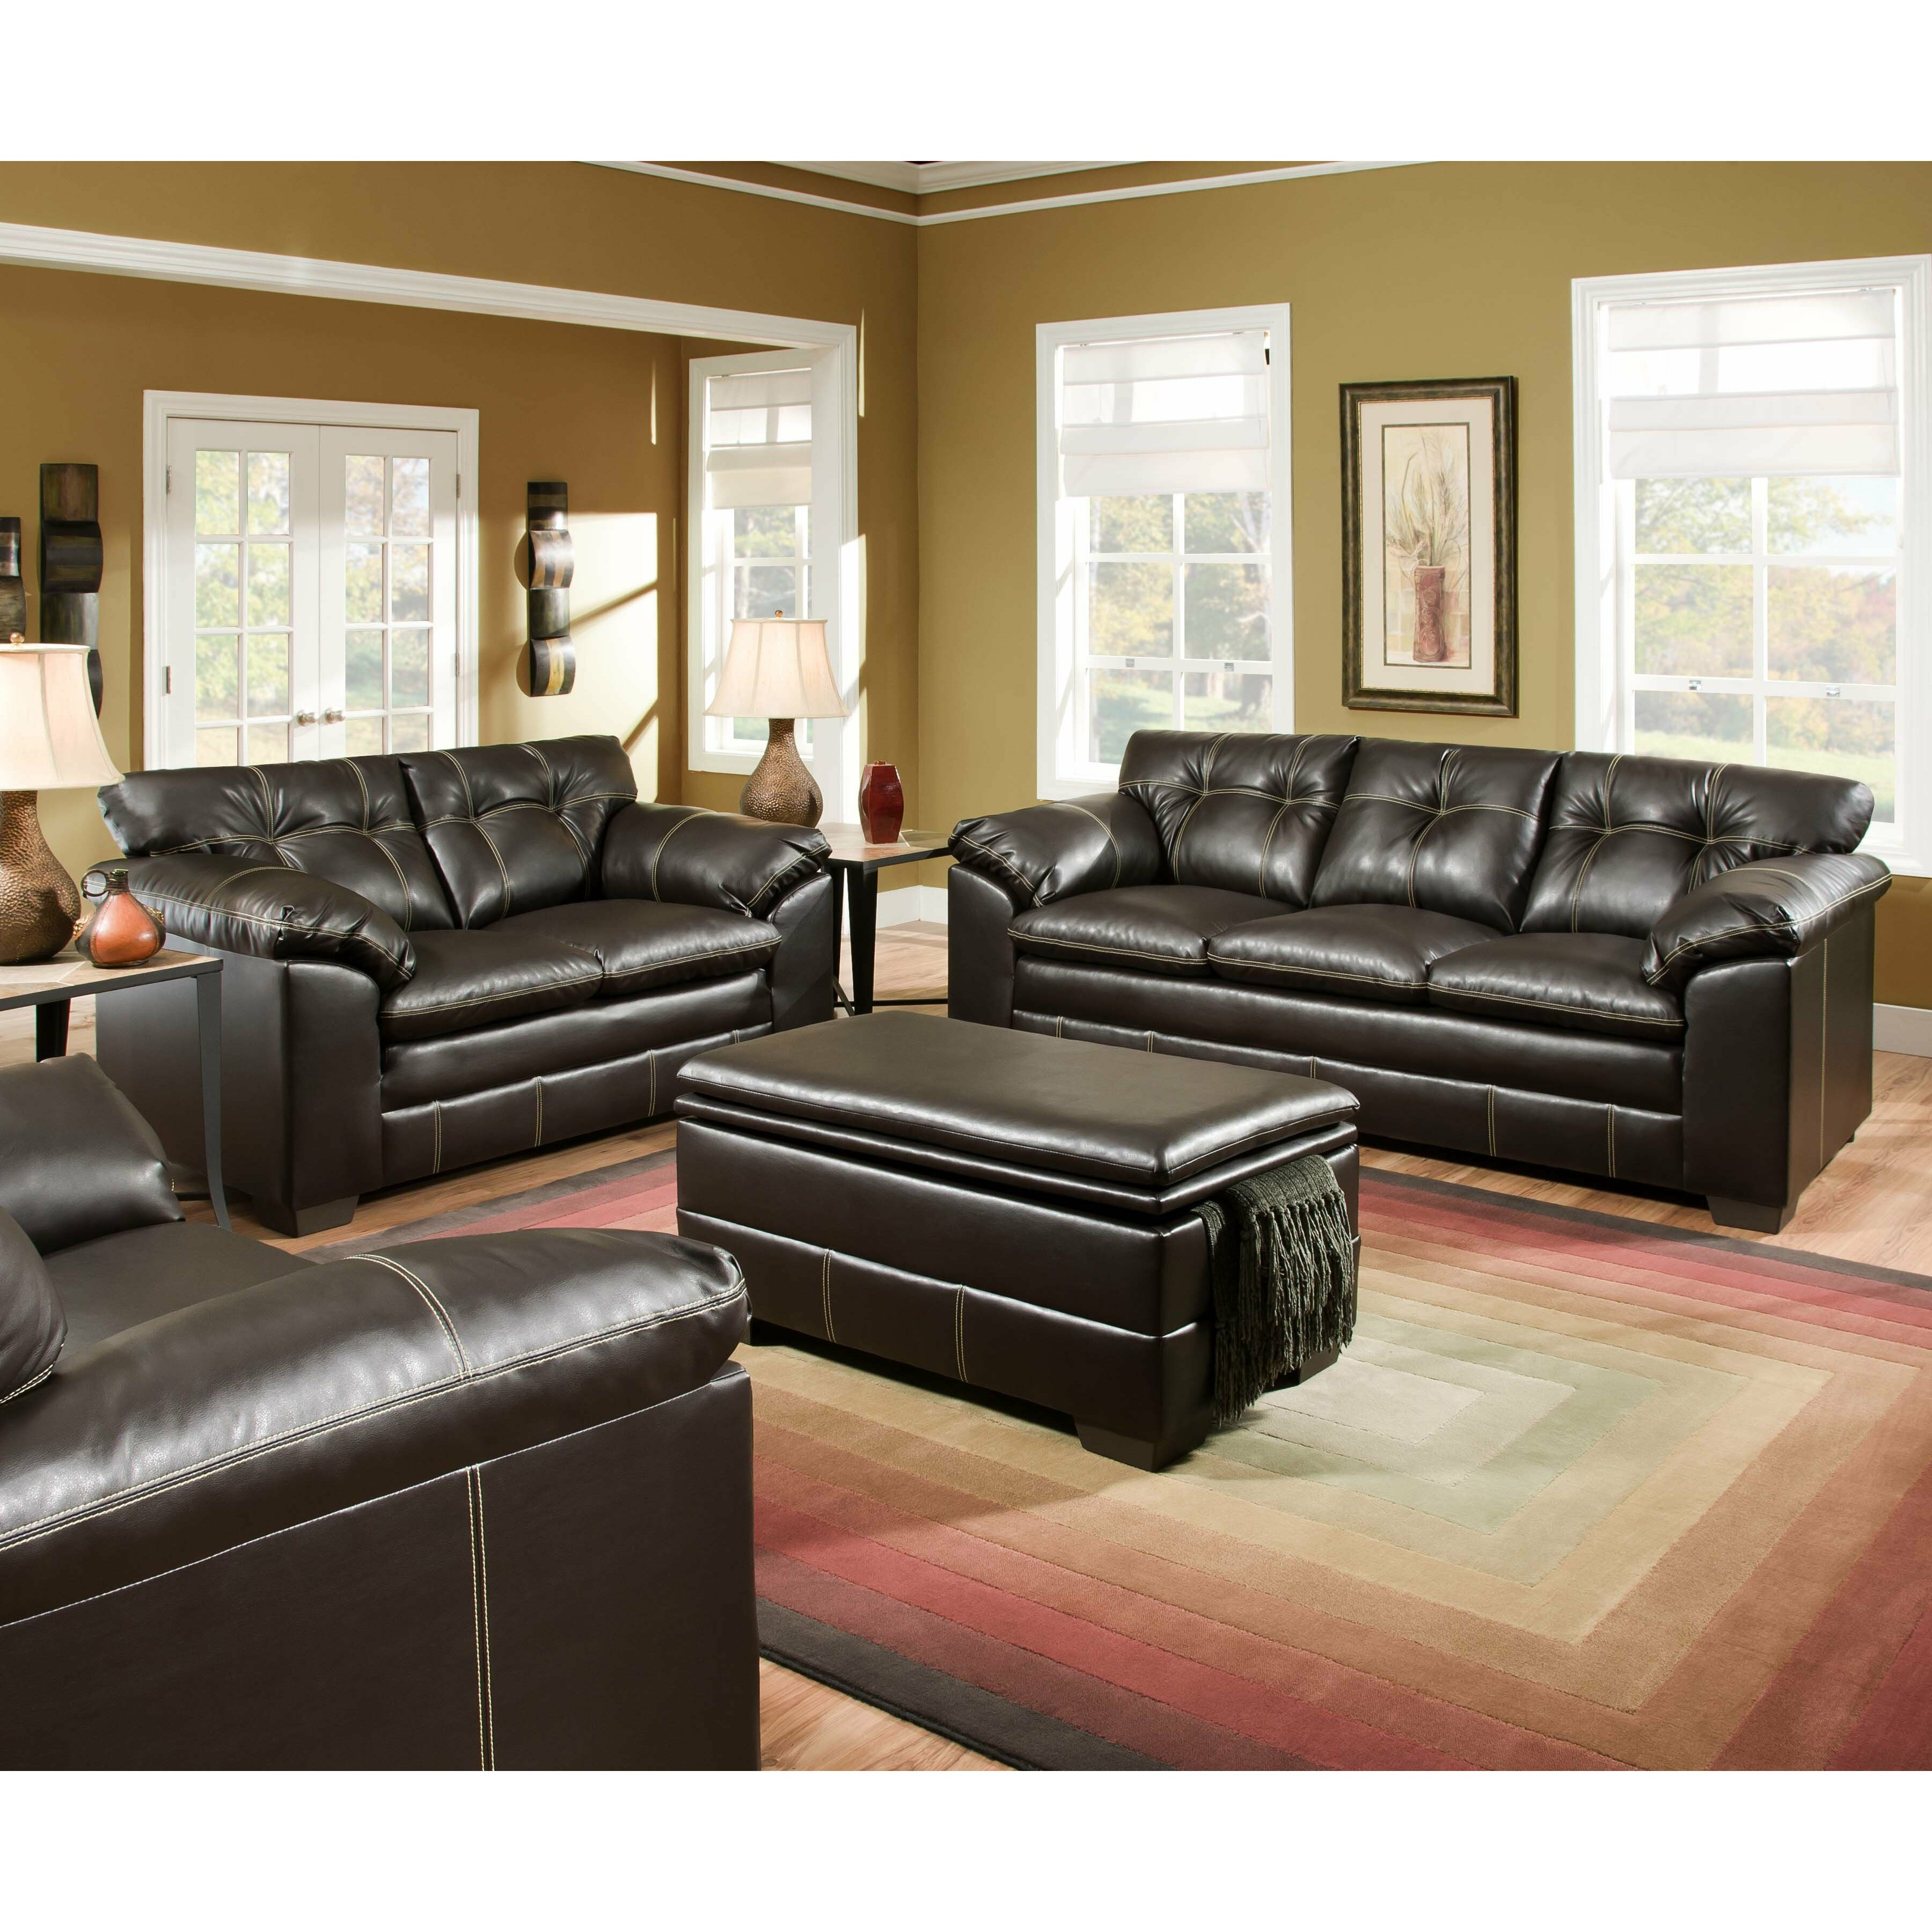 Living Room Furniture Leather And Upholstery Alcott Hill Simmons Upholstery Merriwood Sofa Reviews Wayfair